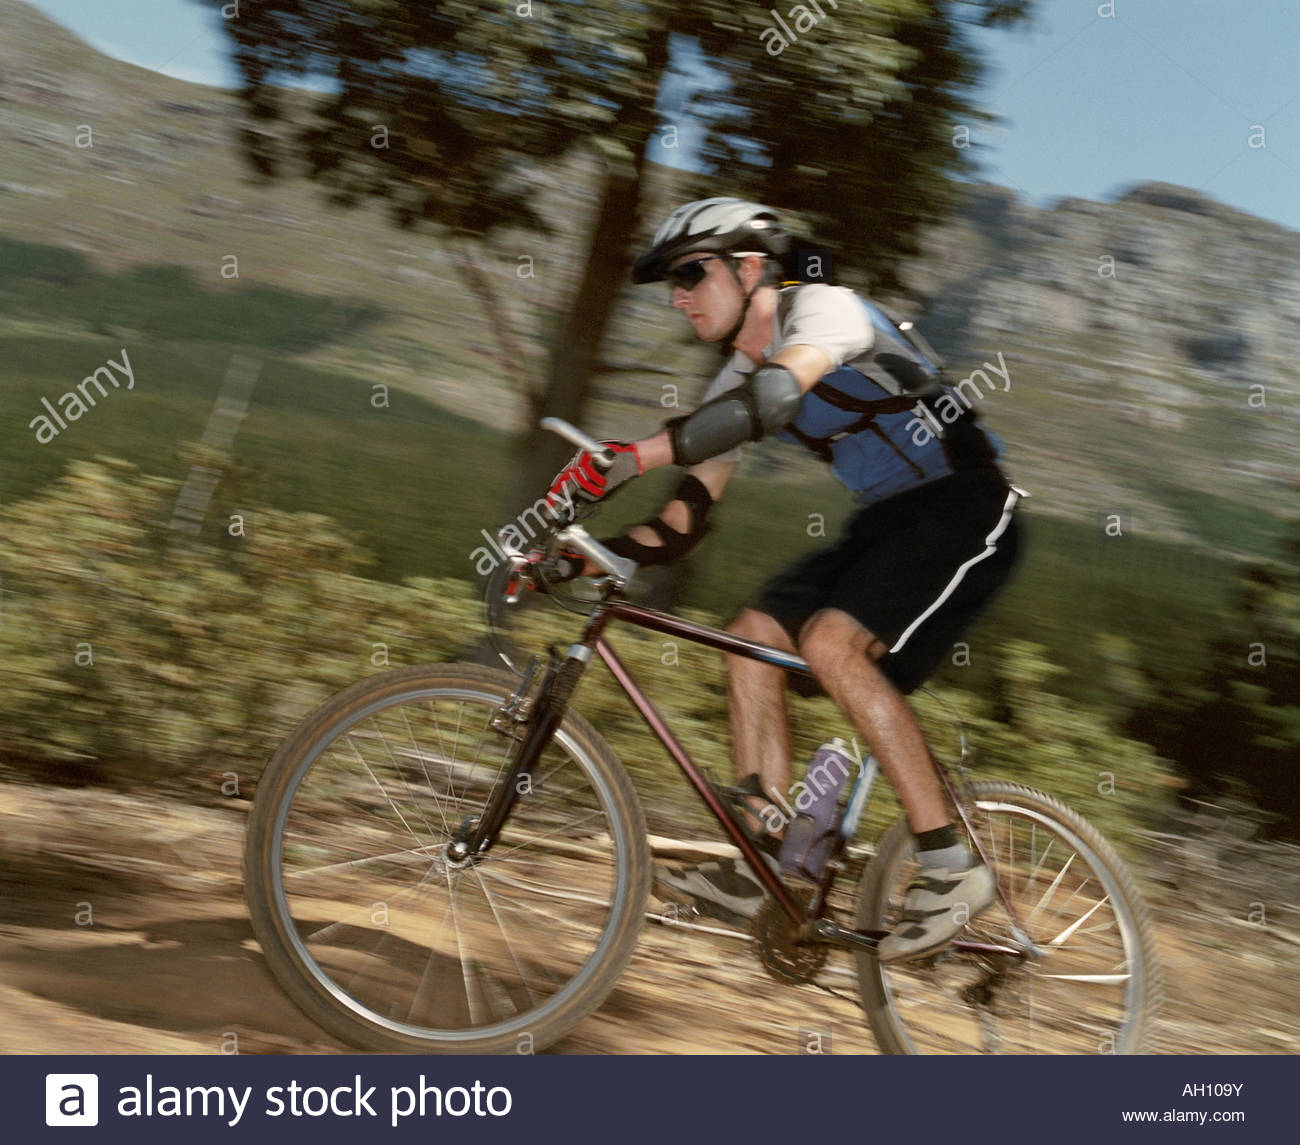 A man riding his bike on a trail - Stock Image